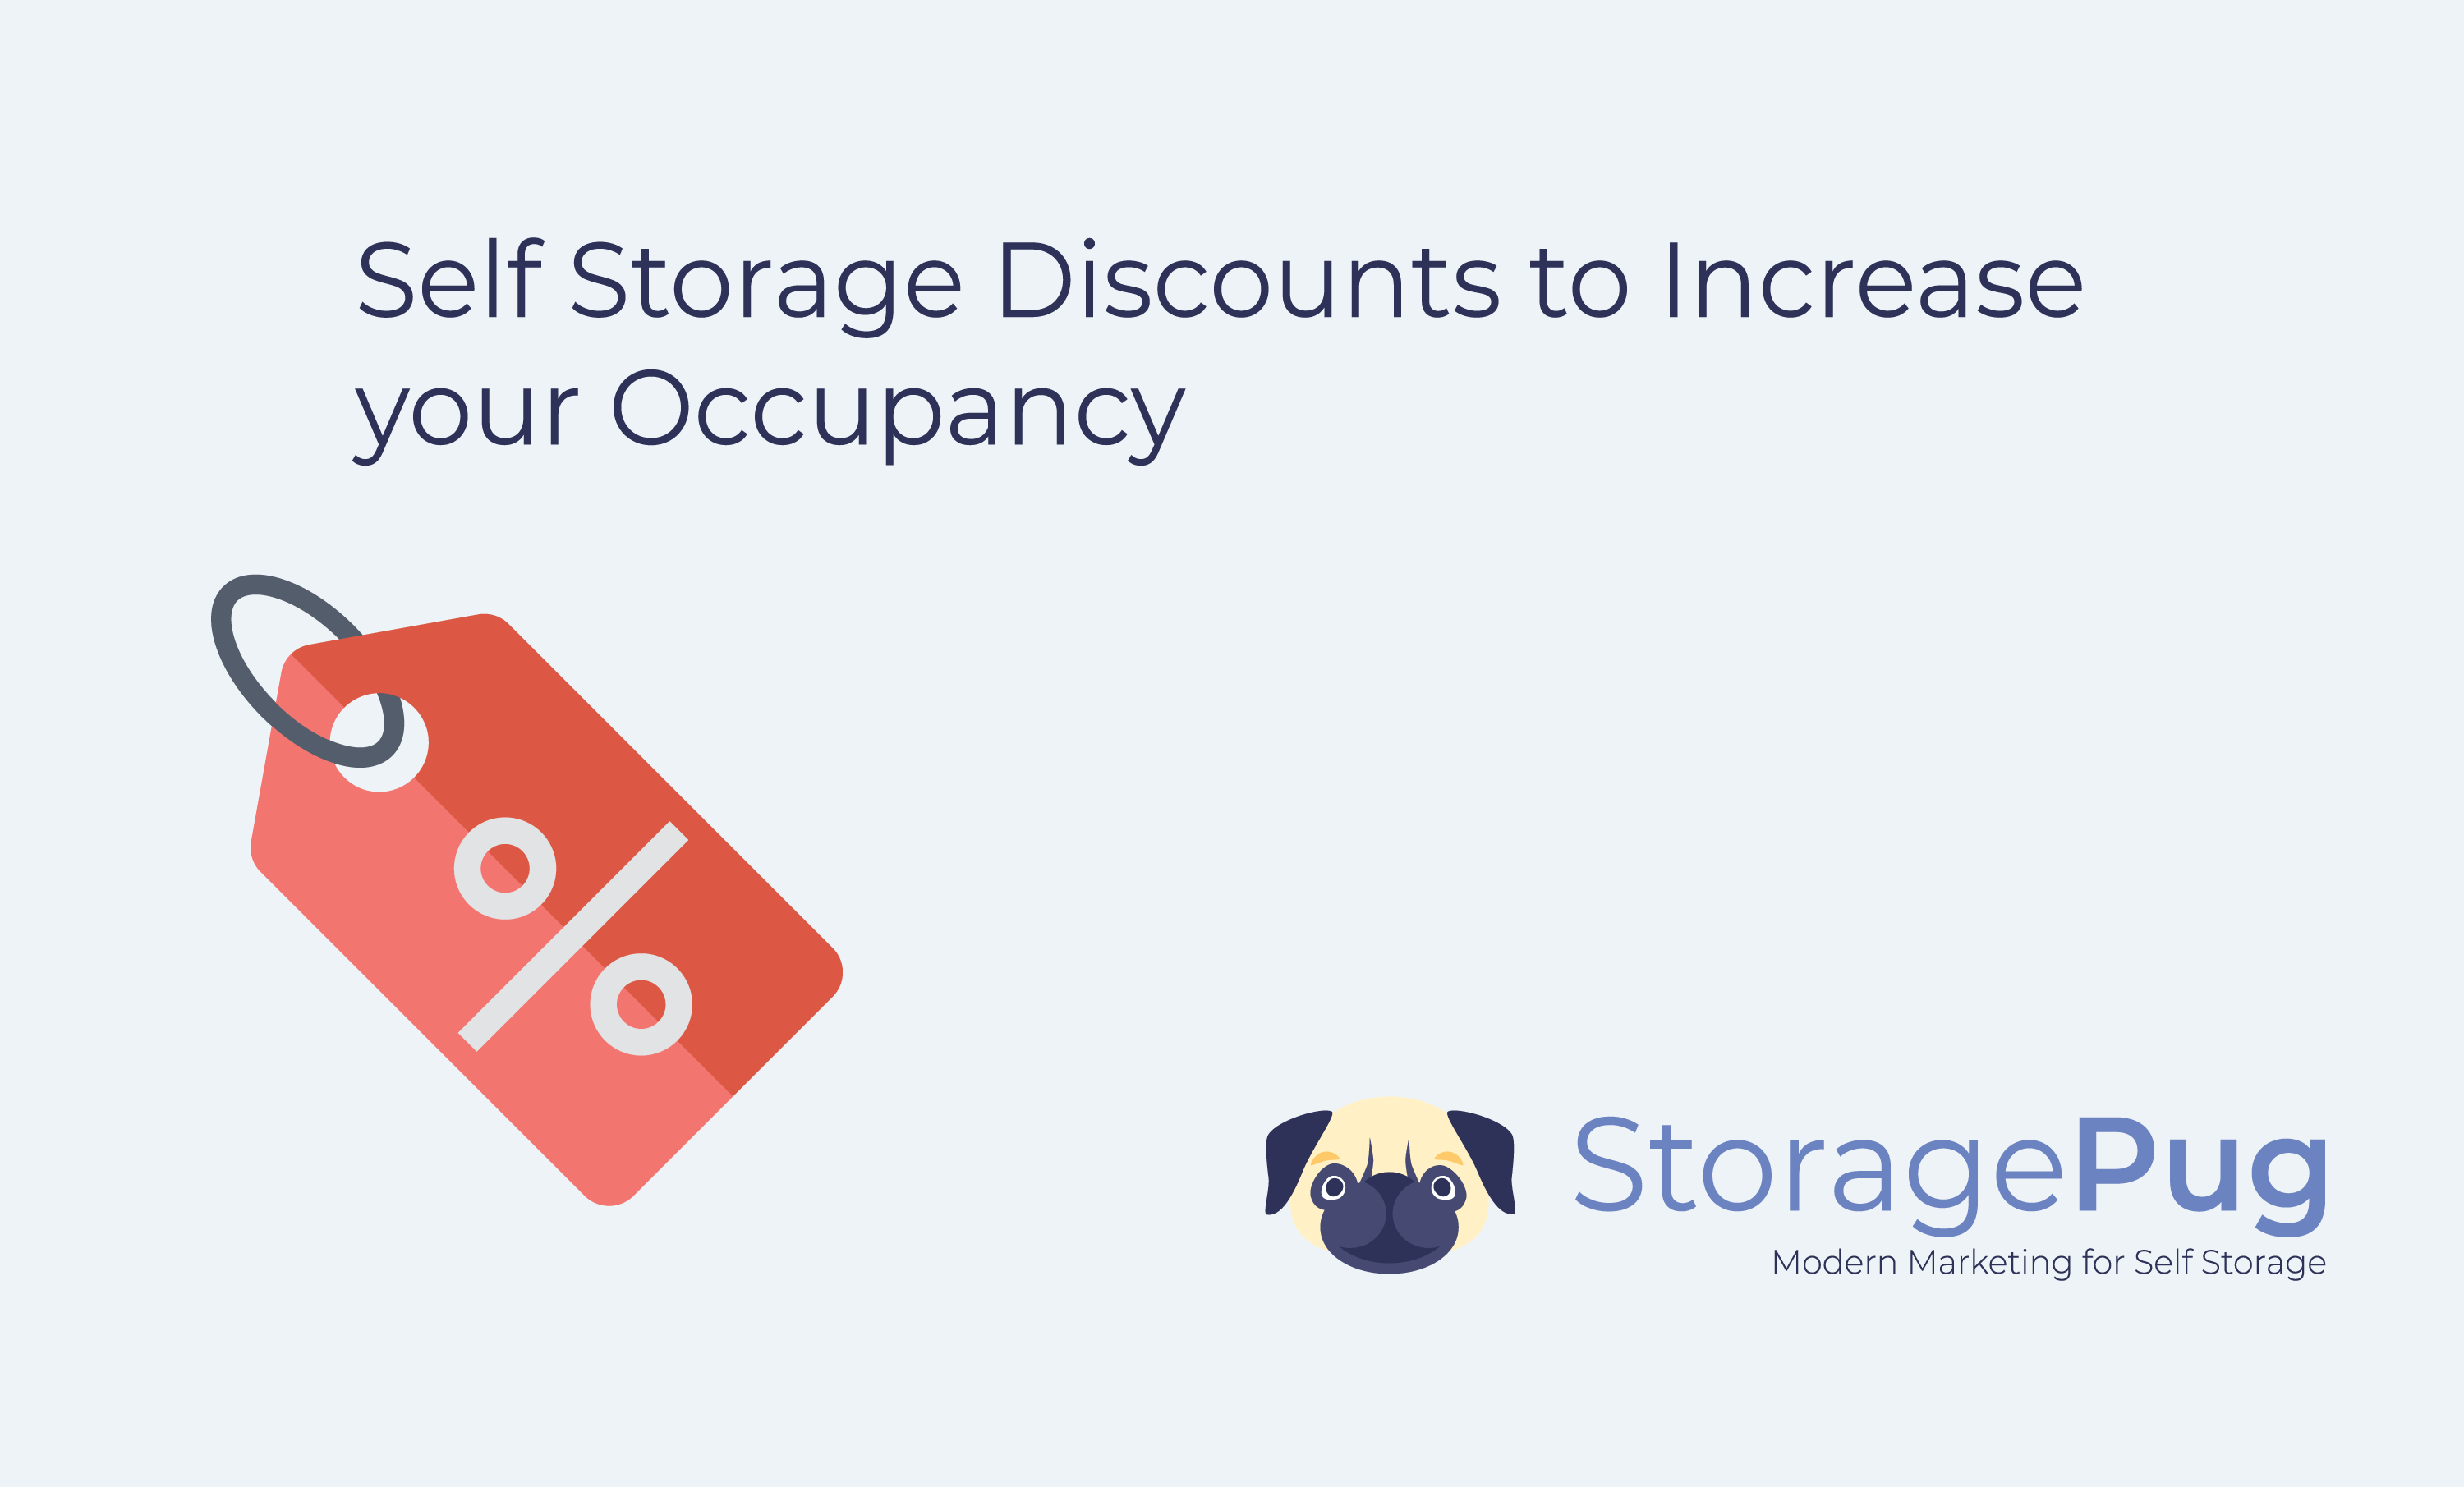 At StoragePug, we make it easy to offer discounts on your self storage facility website. However, being able to offer a discount is not the same as ensuring that the discount will be effective.